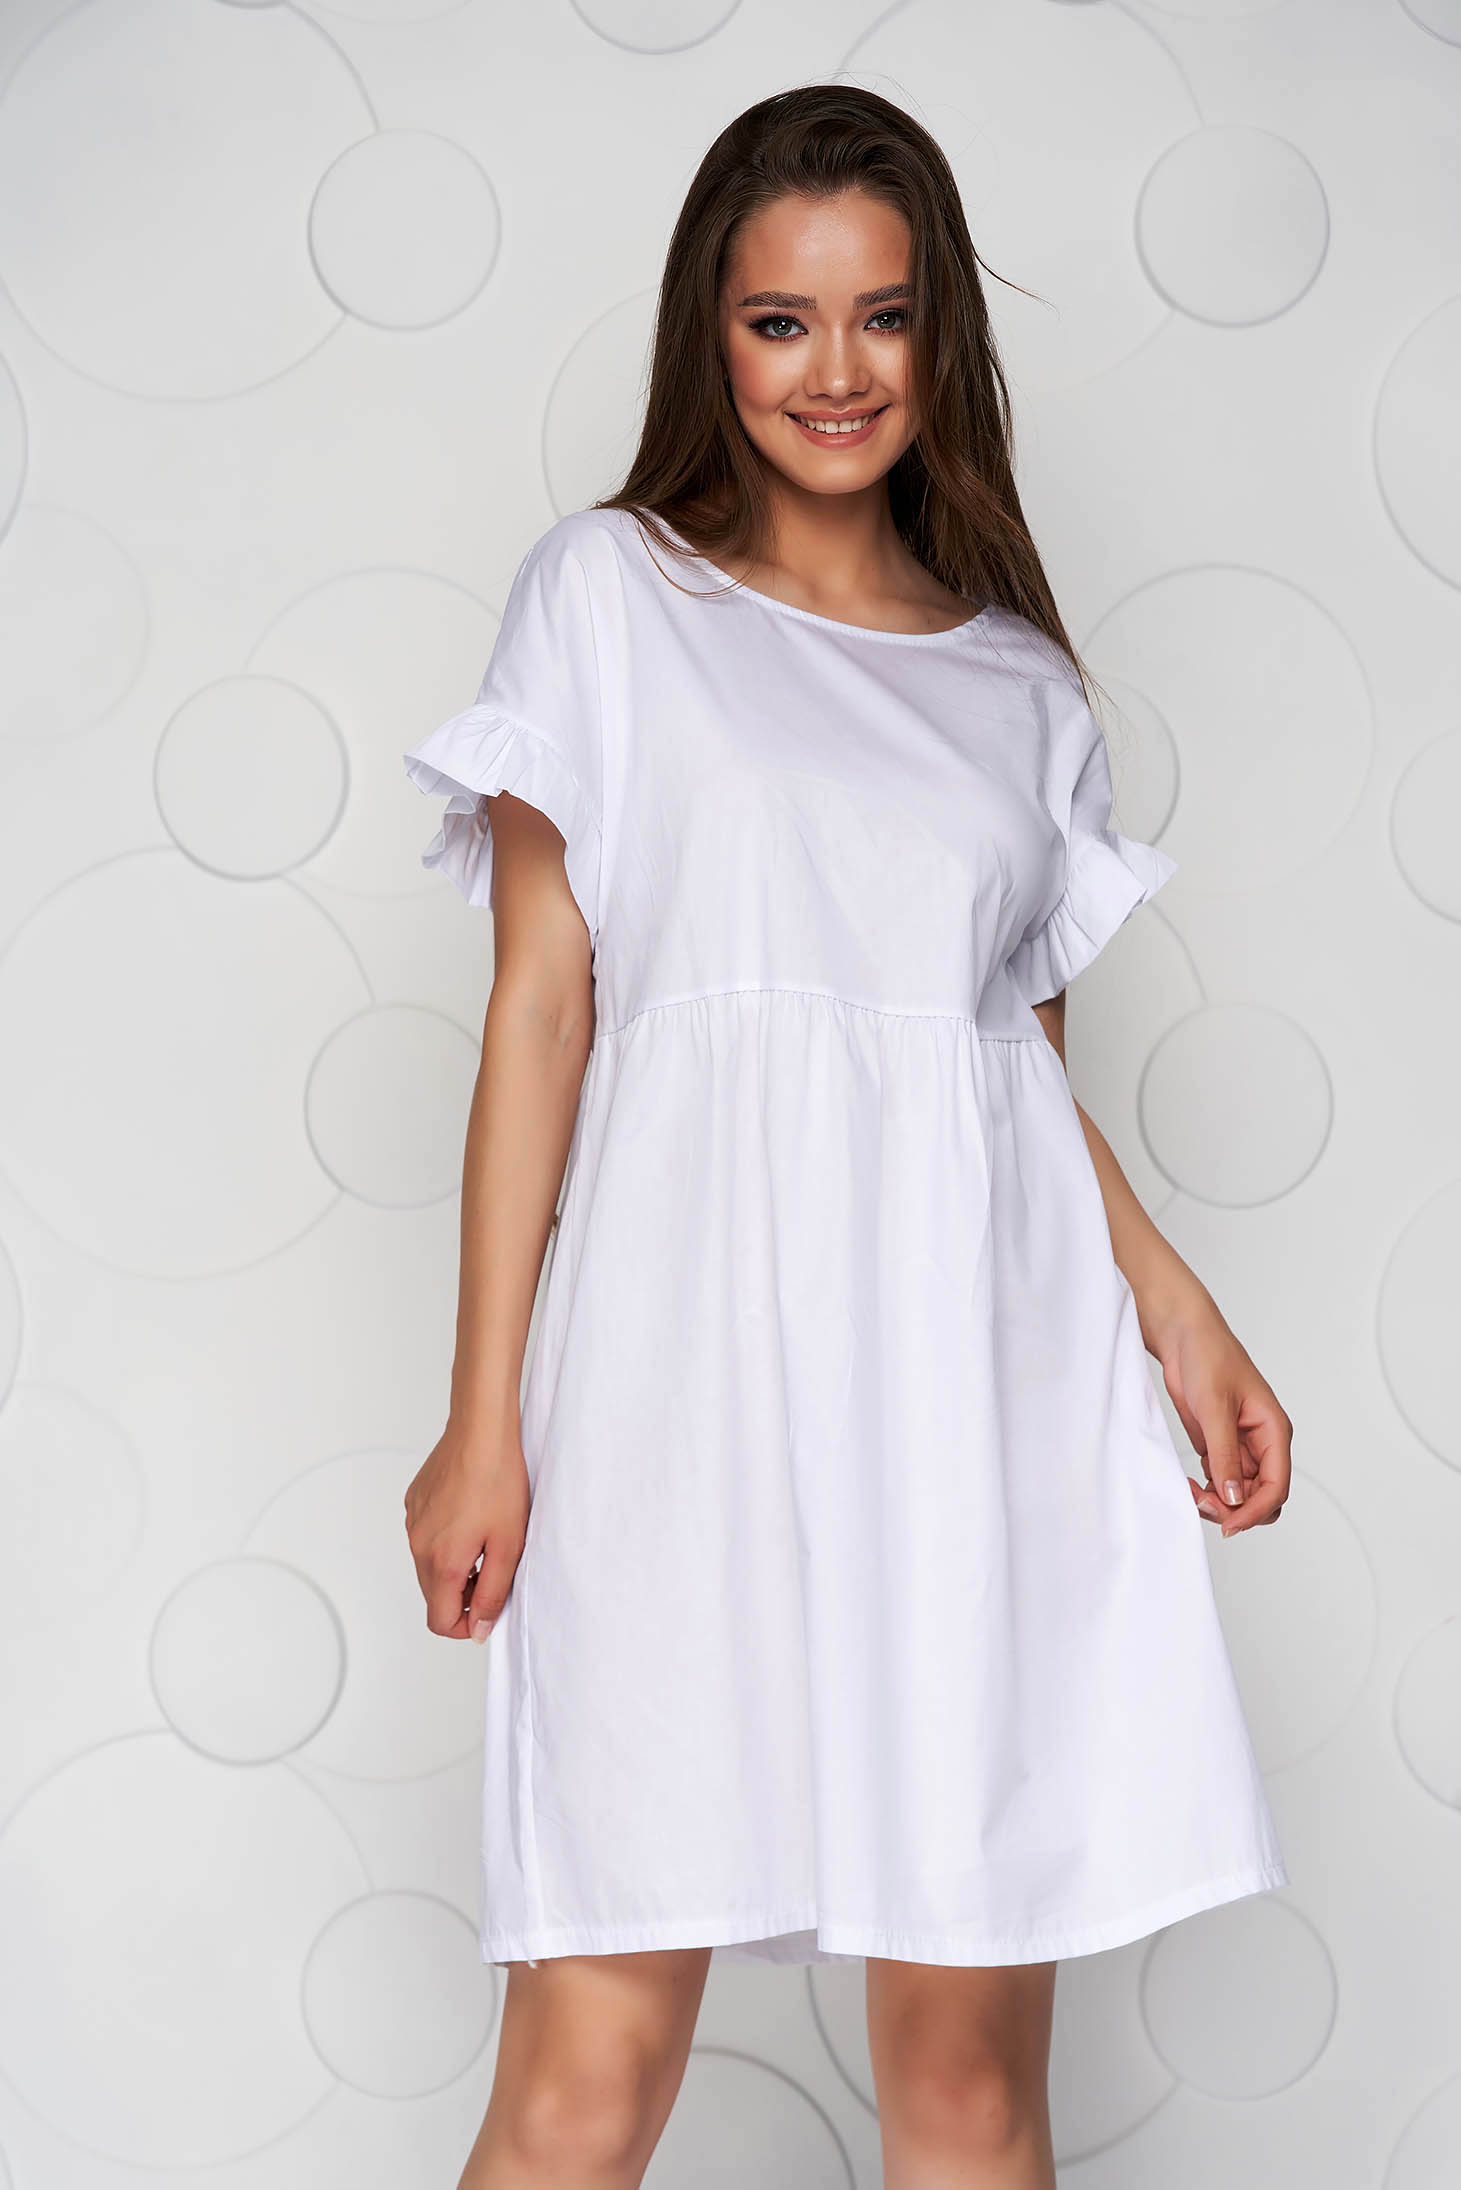 White dress loose fit with ruffle details